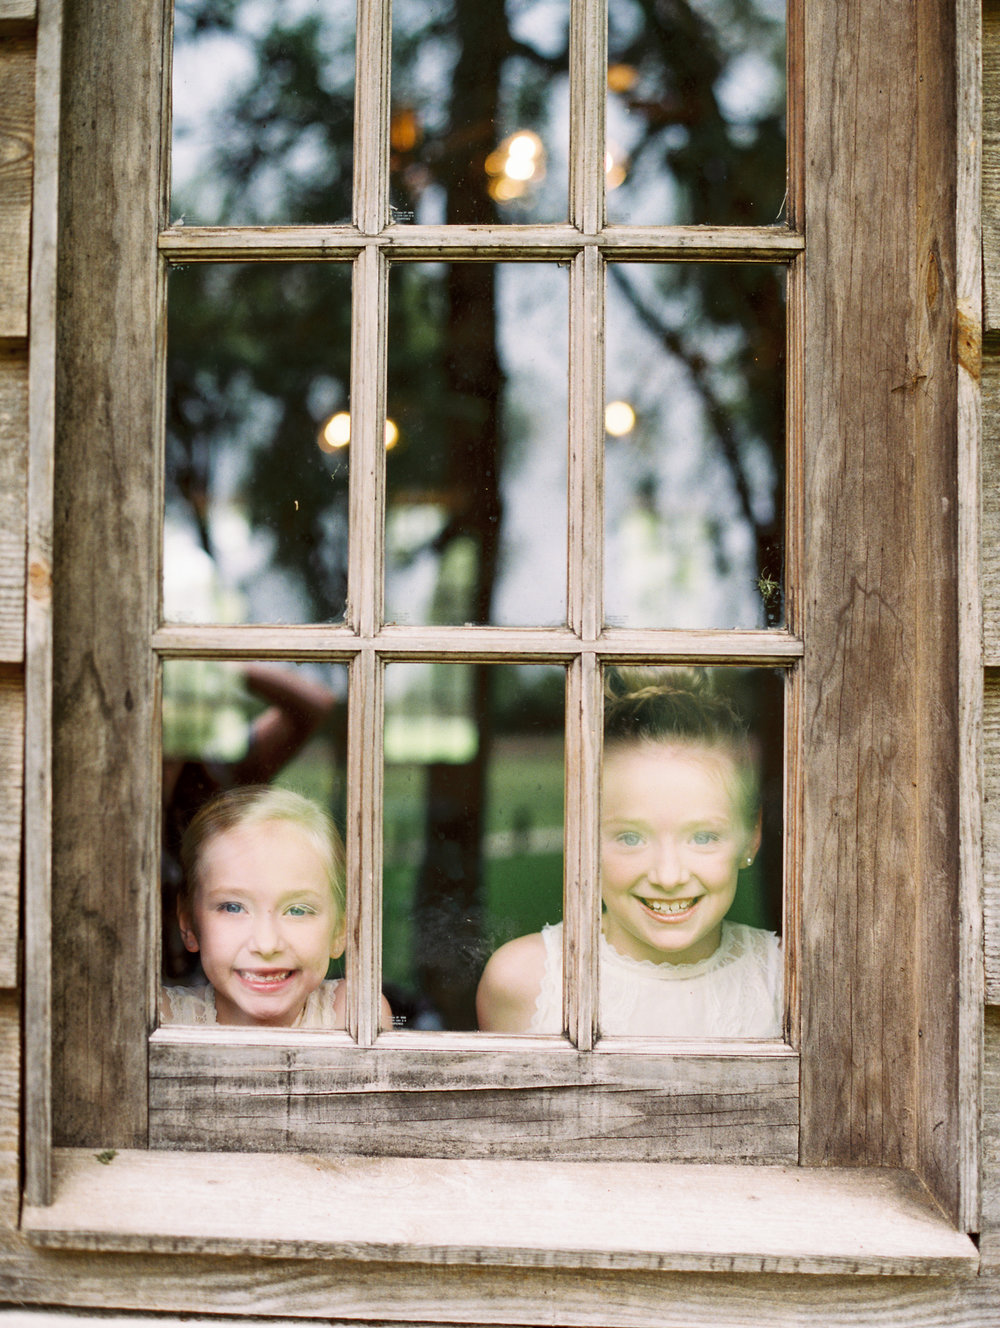 Hill Country Spring Wedding at Red Bud Hall | Austin Wedding Photographer | Film Wedding Photographer | Britni Dean Photography | Rainy Day Wedding Inspiration | cute flower girls